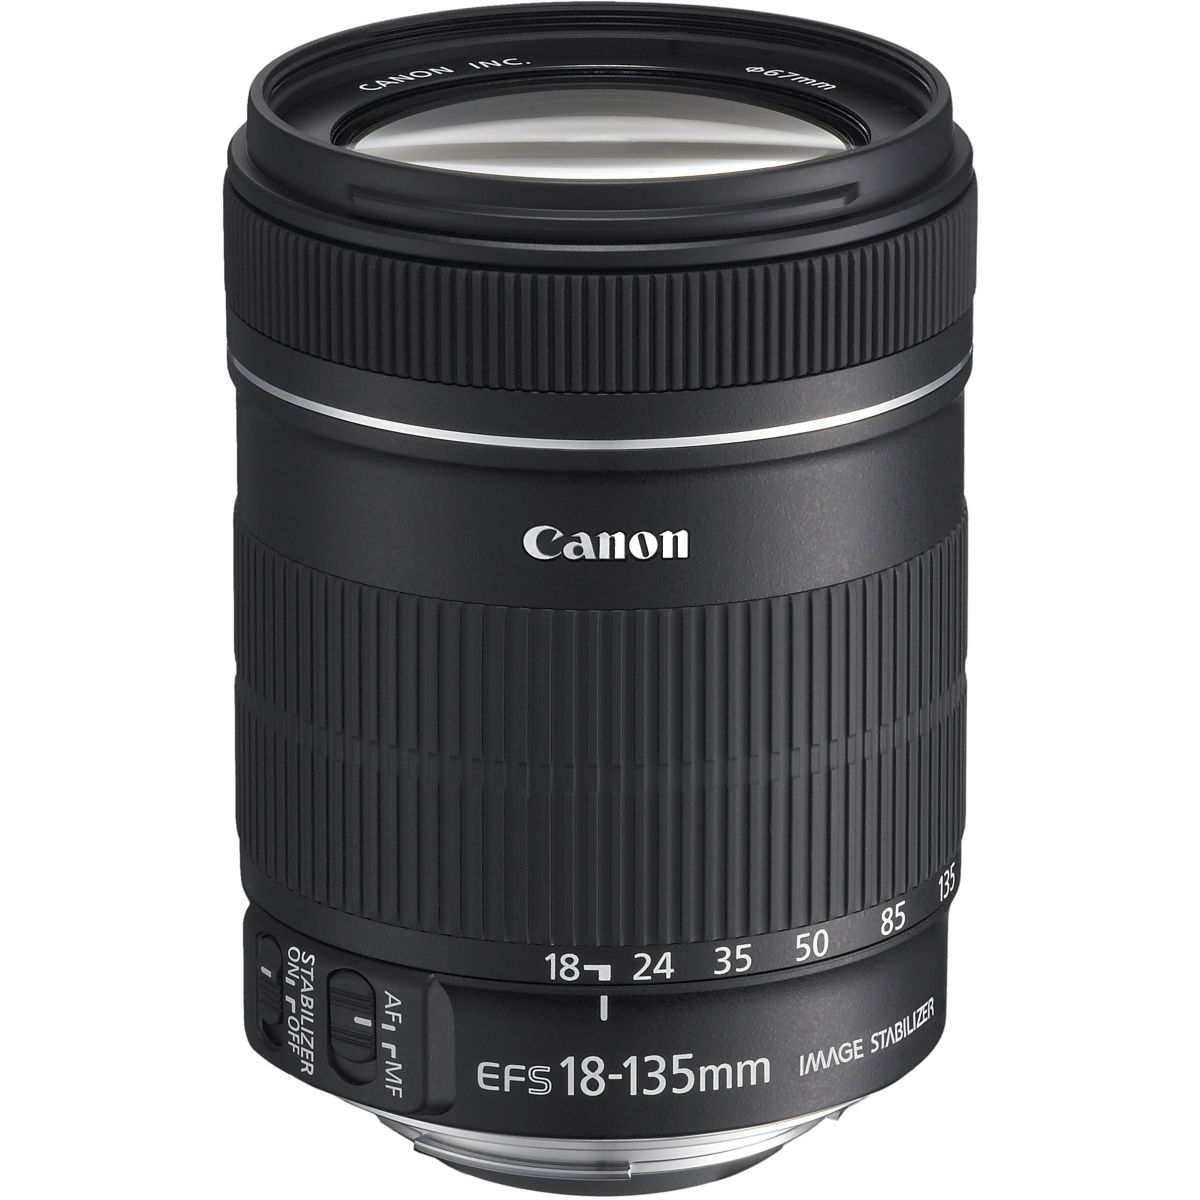 Objectif Canon EF-S 18-135mm f/3,5-5,6 IS